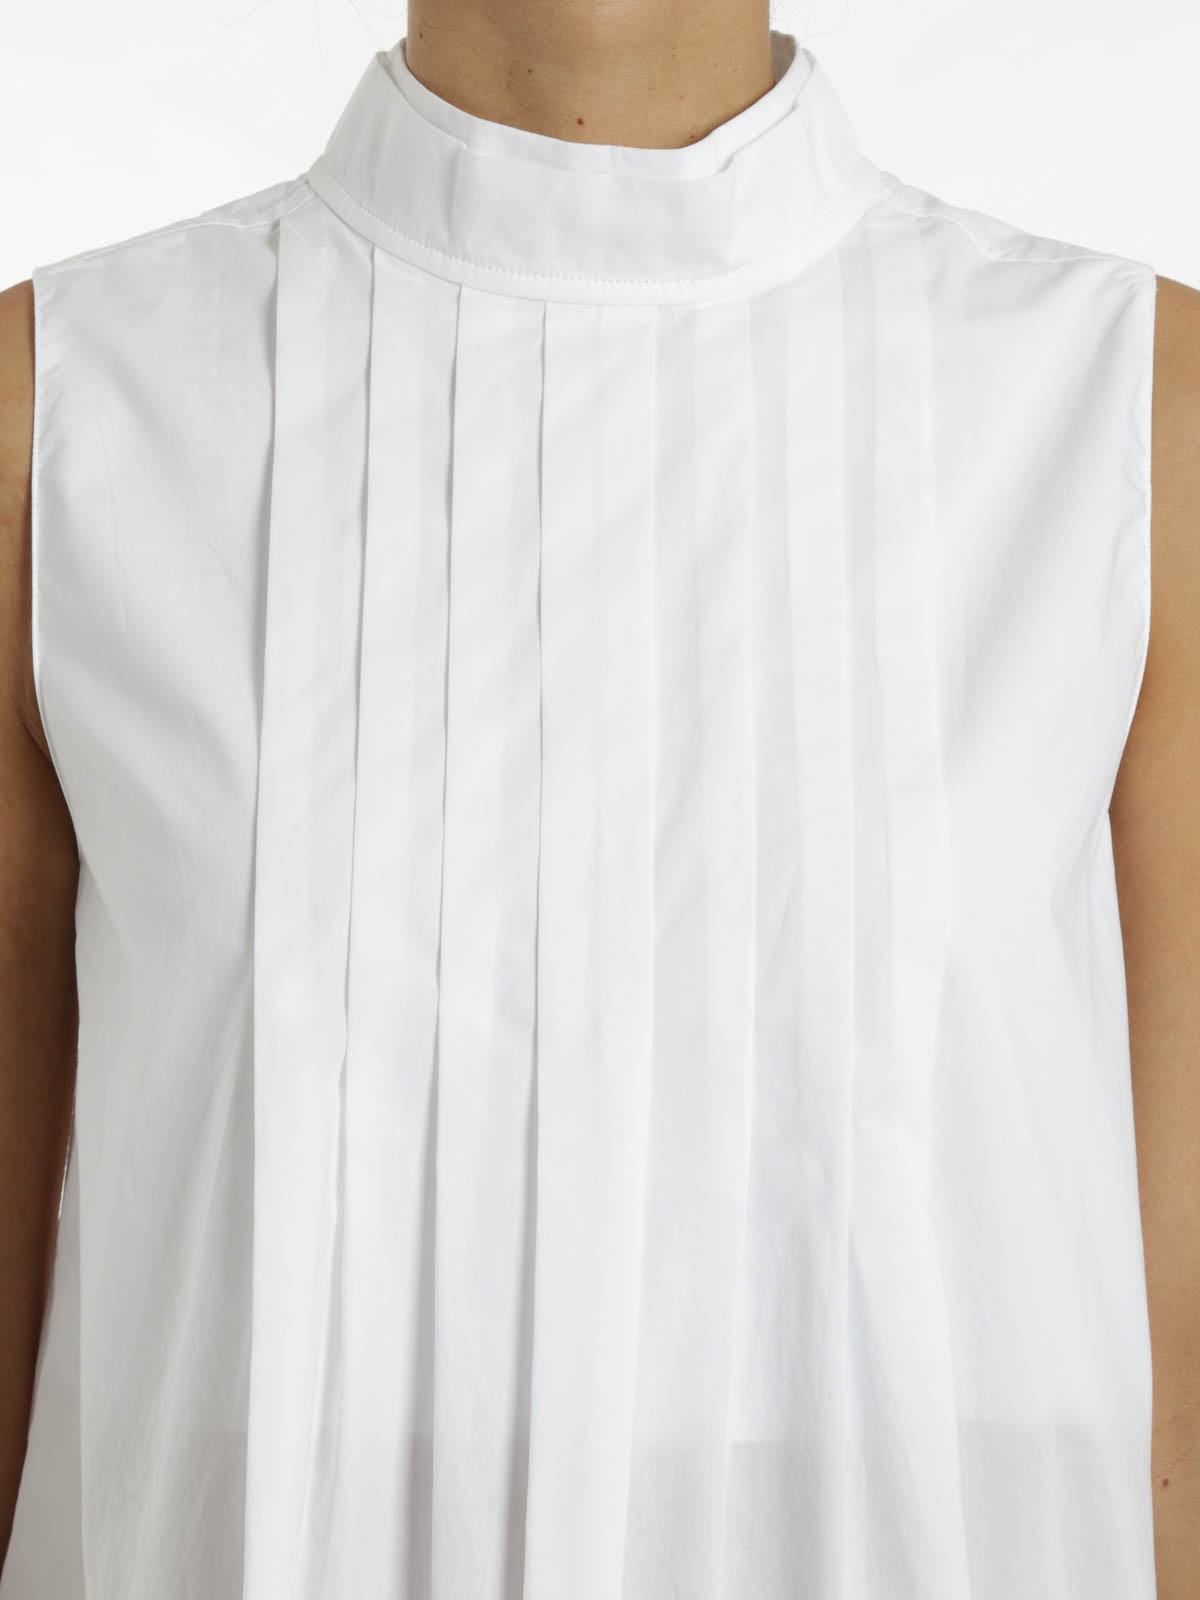 marni buy online pleated shirt